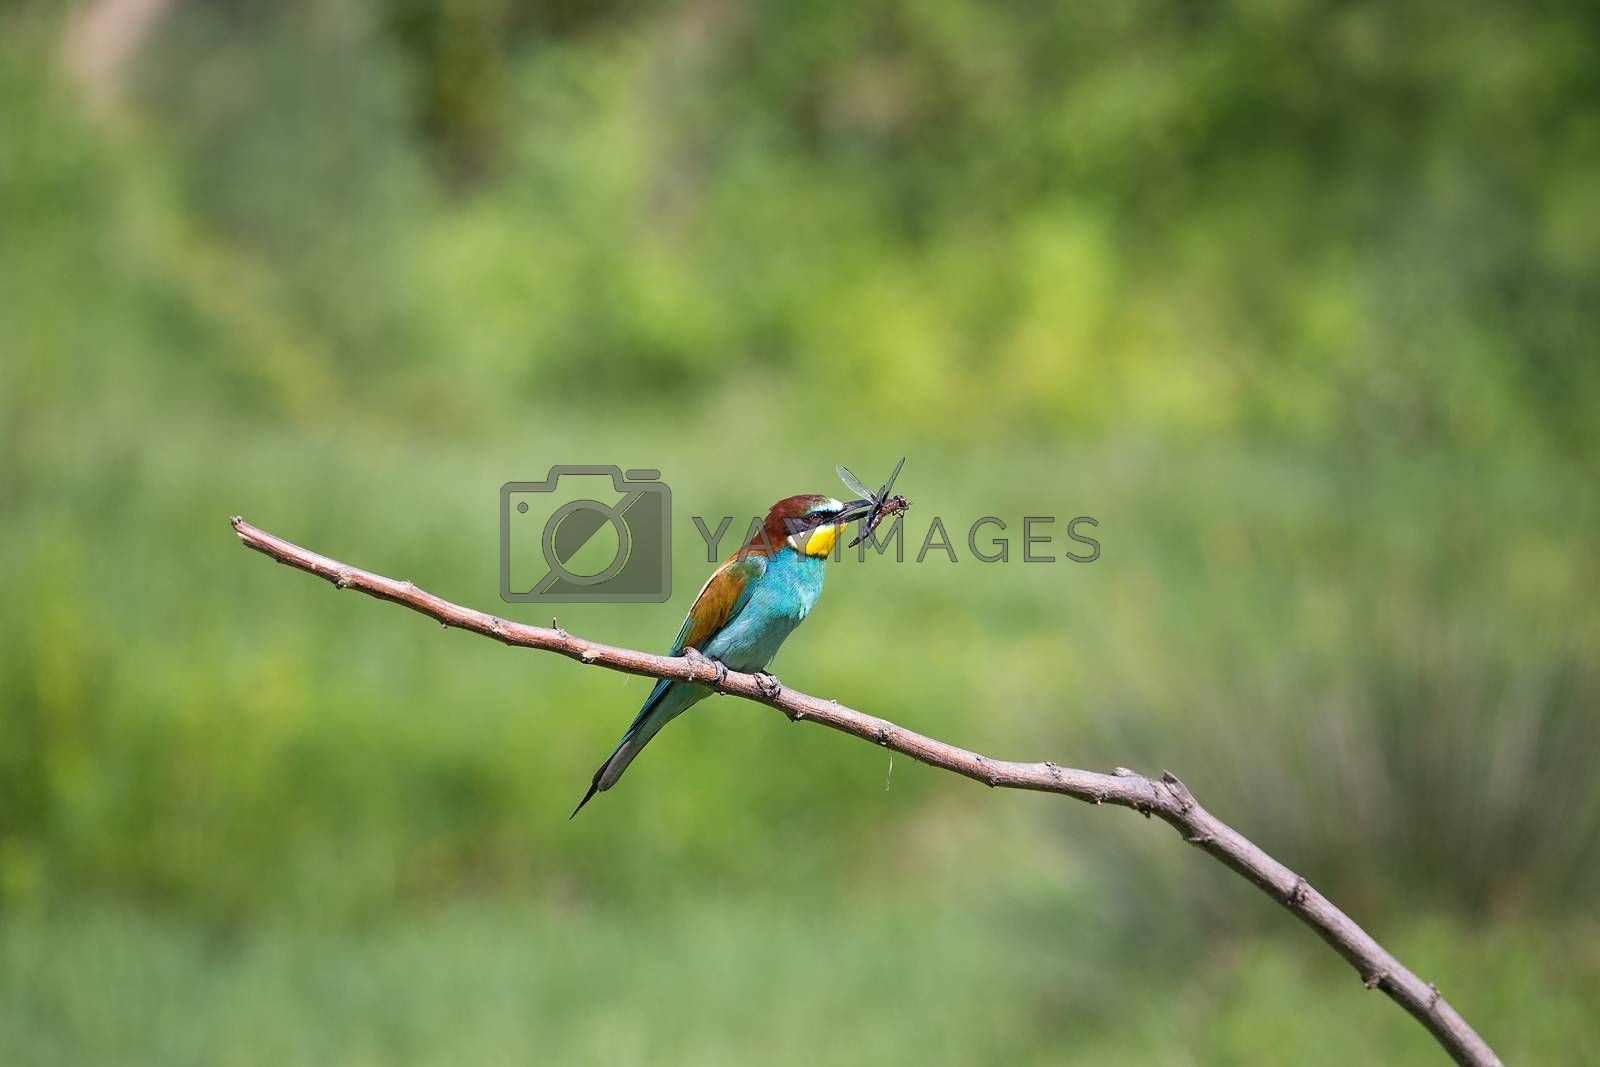 European Bee-eater (Merops apiaster) with insect - dragonfly on brunch - tropical colours bird, Isola della Cona, Monfalcone, Italy, Europe